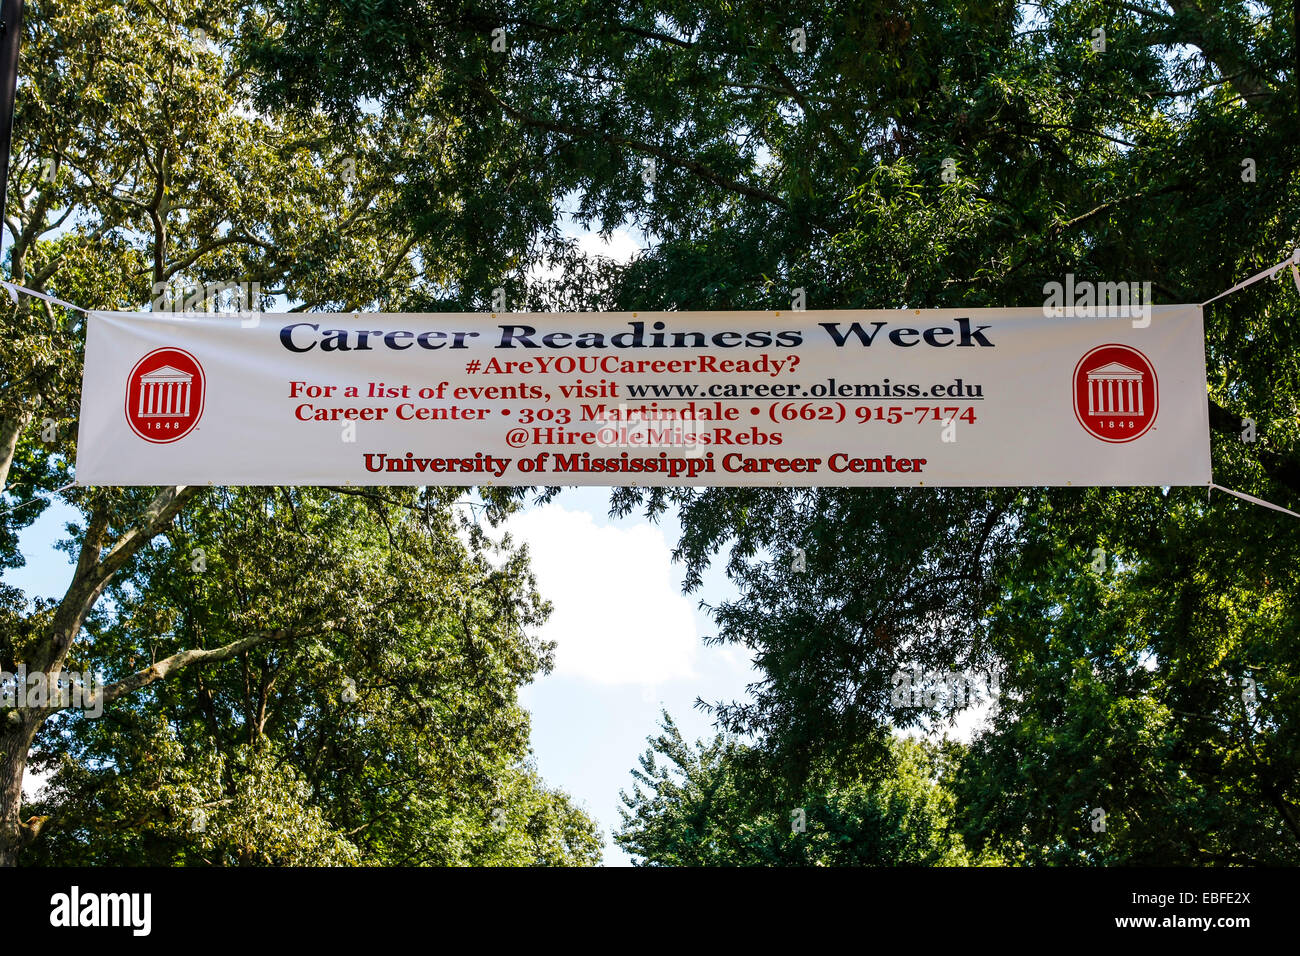 Overhead sign - Career Readiness Week hanging in the 'Ole Miss' University of Mississippi campus at Oxford - Stock Image